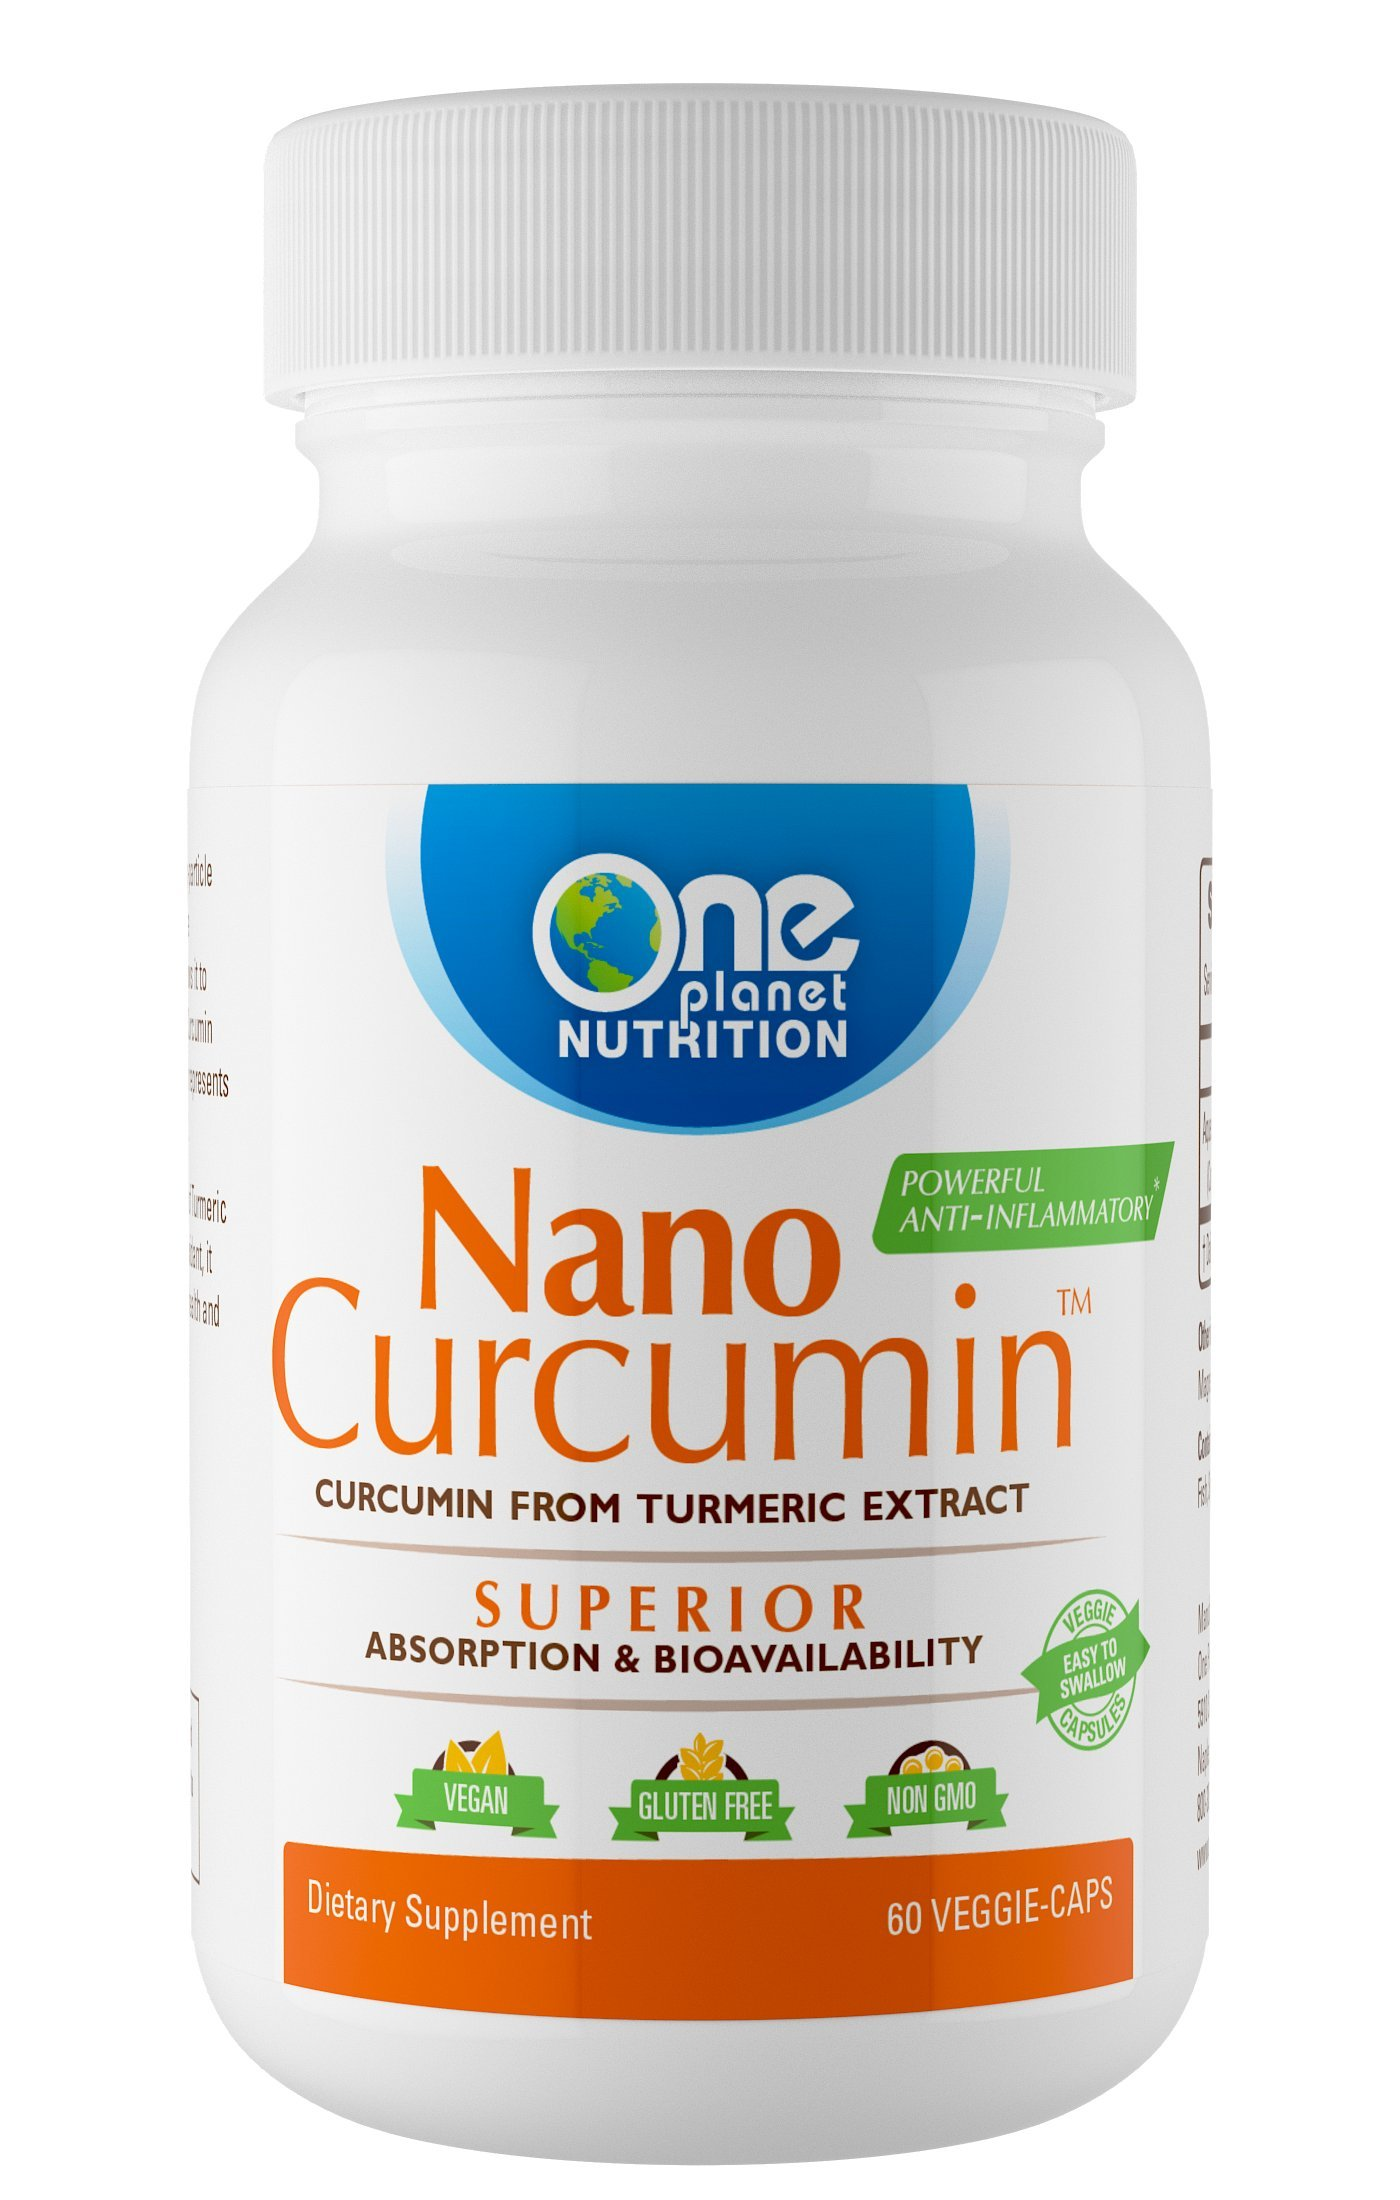 Nano Curcumin, Nano Particle Sized, Completely Absorbs, High Bioavailability, Anti-Inflammatory, Antioxidant, Better Health. 2 Months Supply